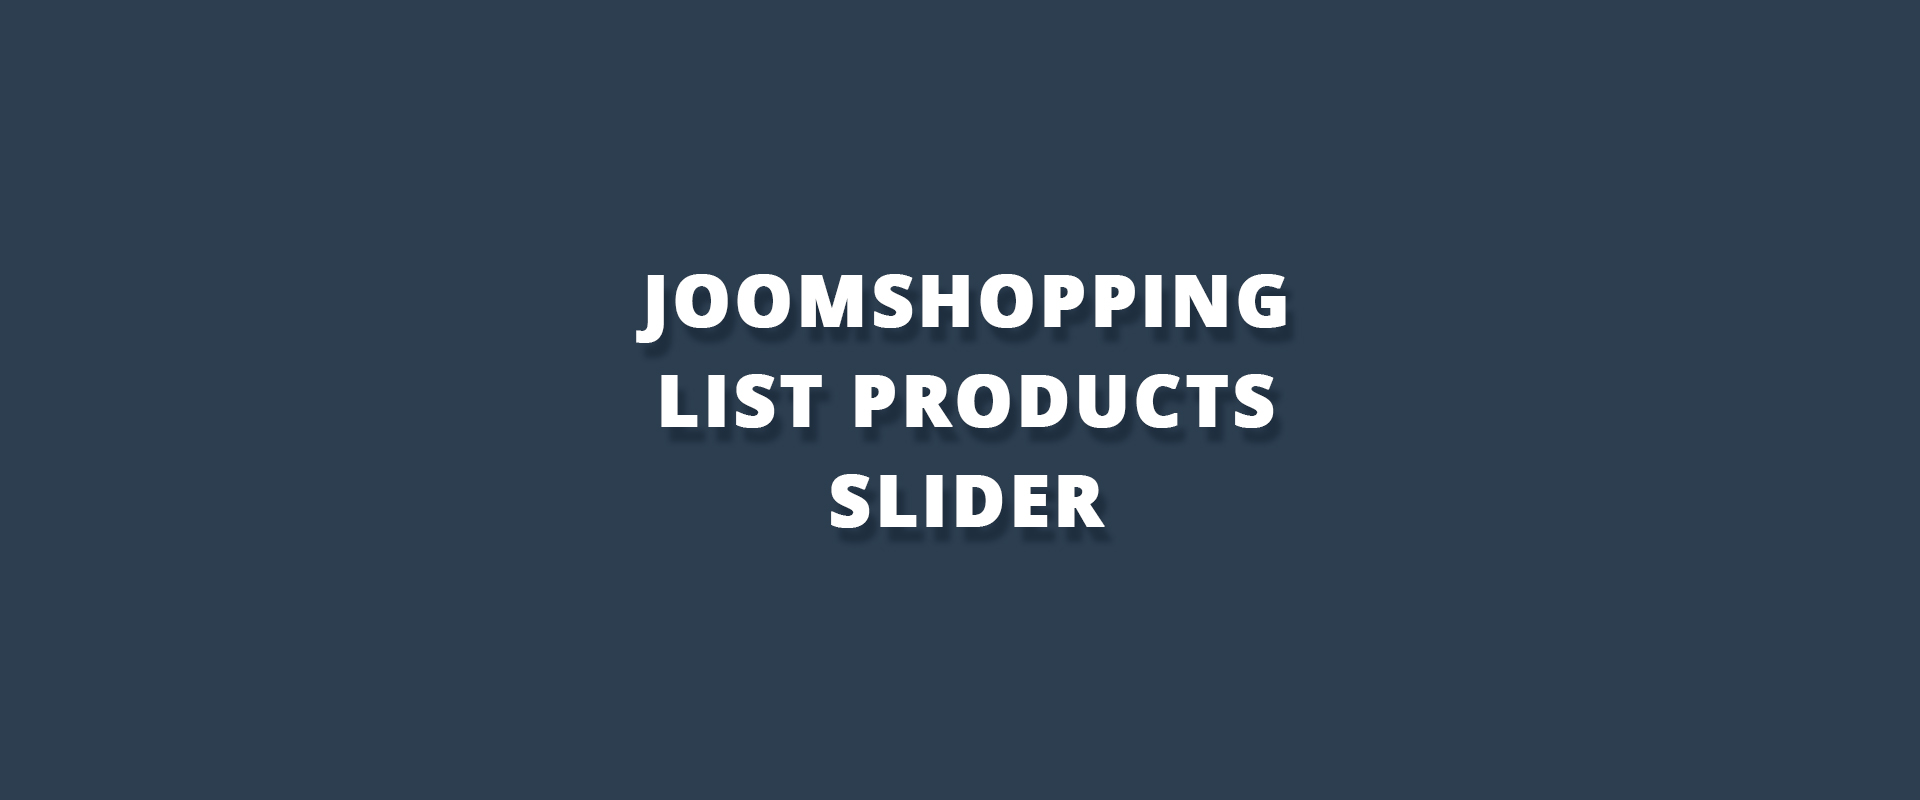 JoomShopping List Products Slider